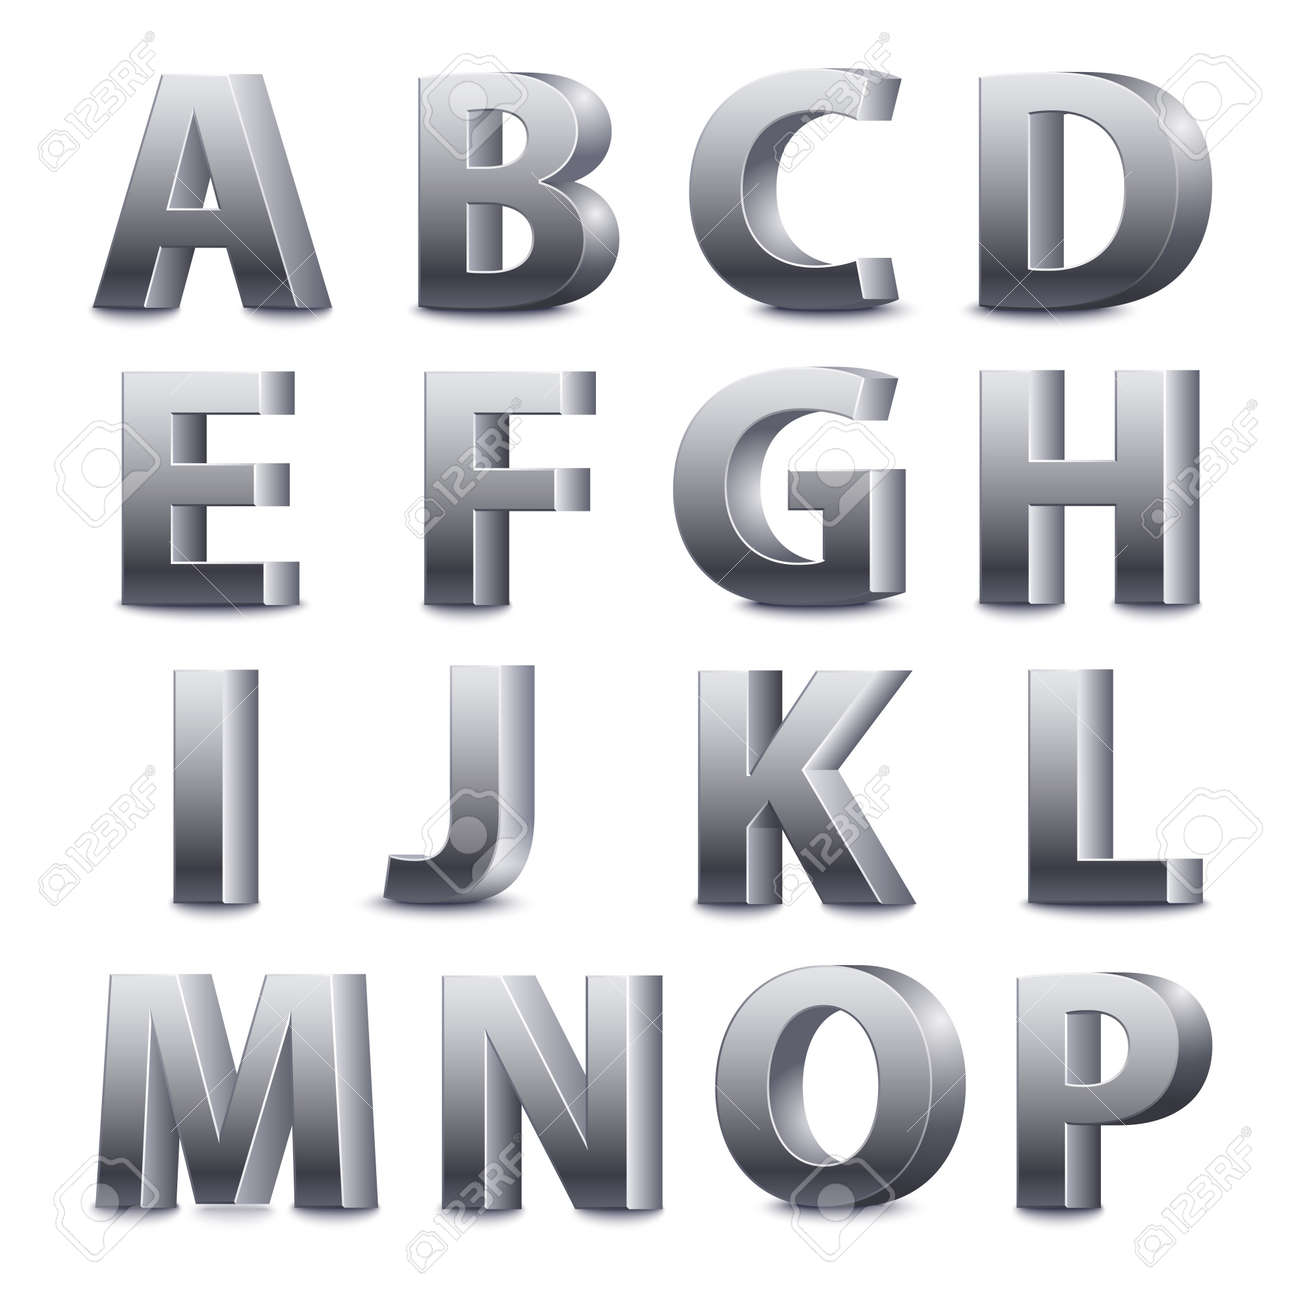 Standing Metal Letters 3D Font Big Metal Letters Standingvector Illustration Royalty